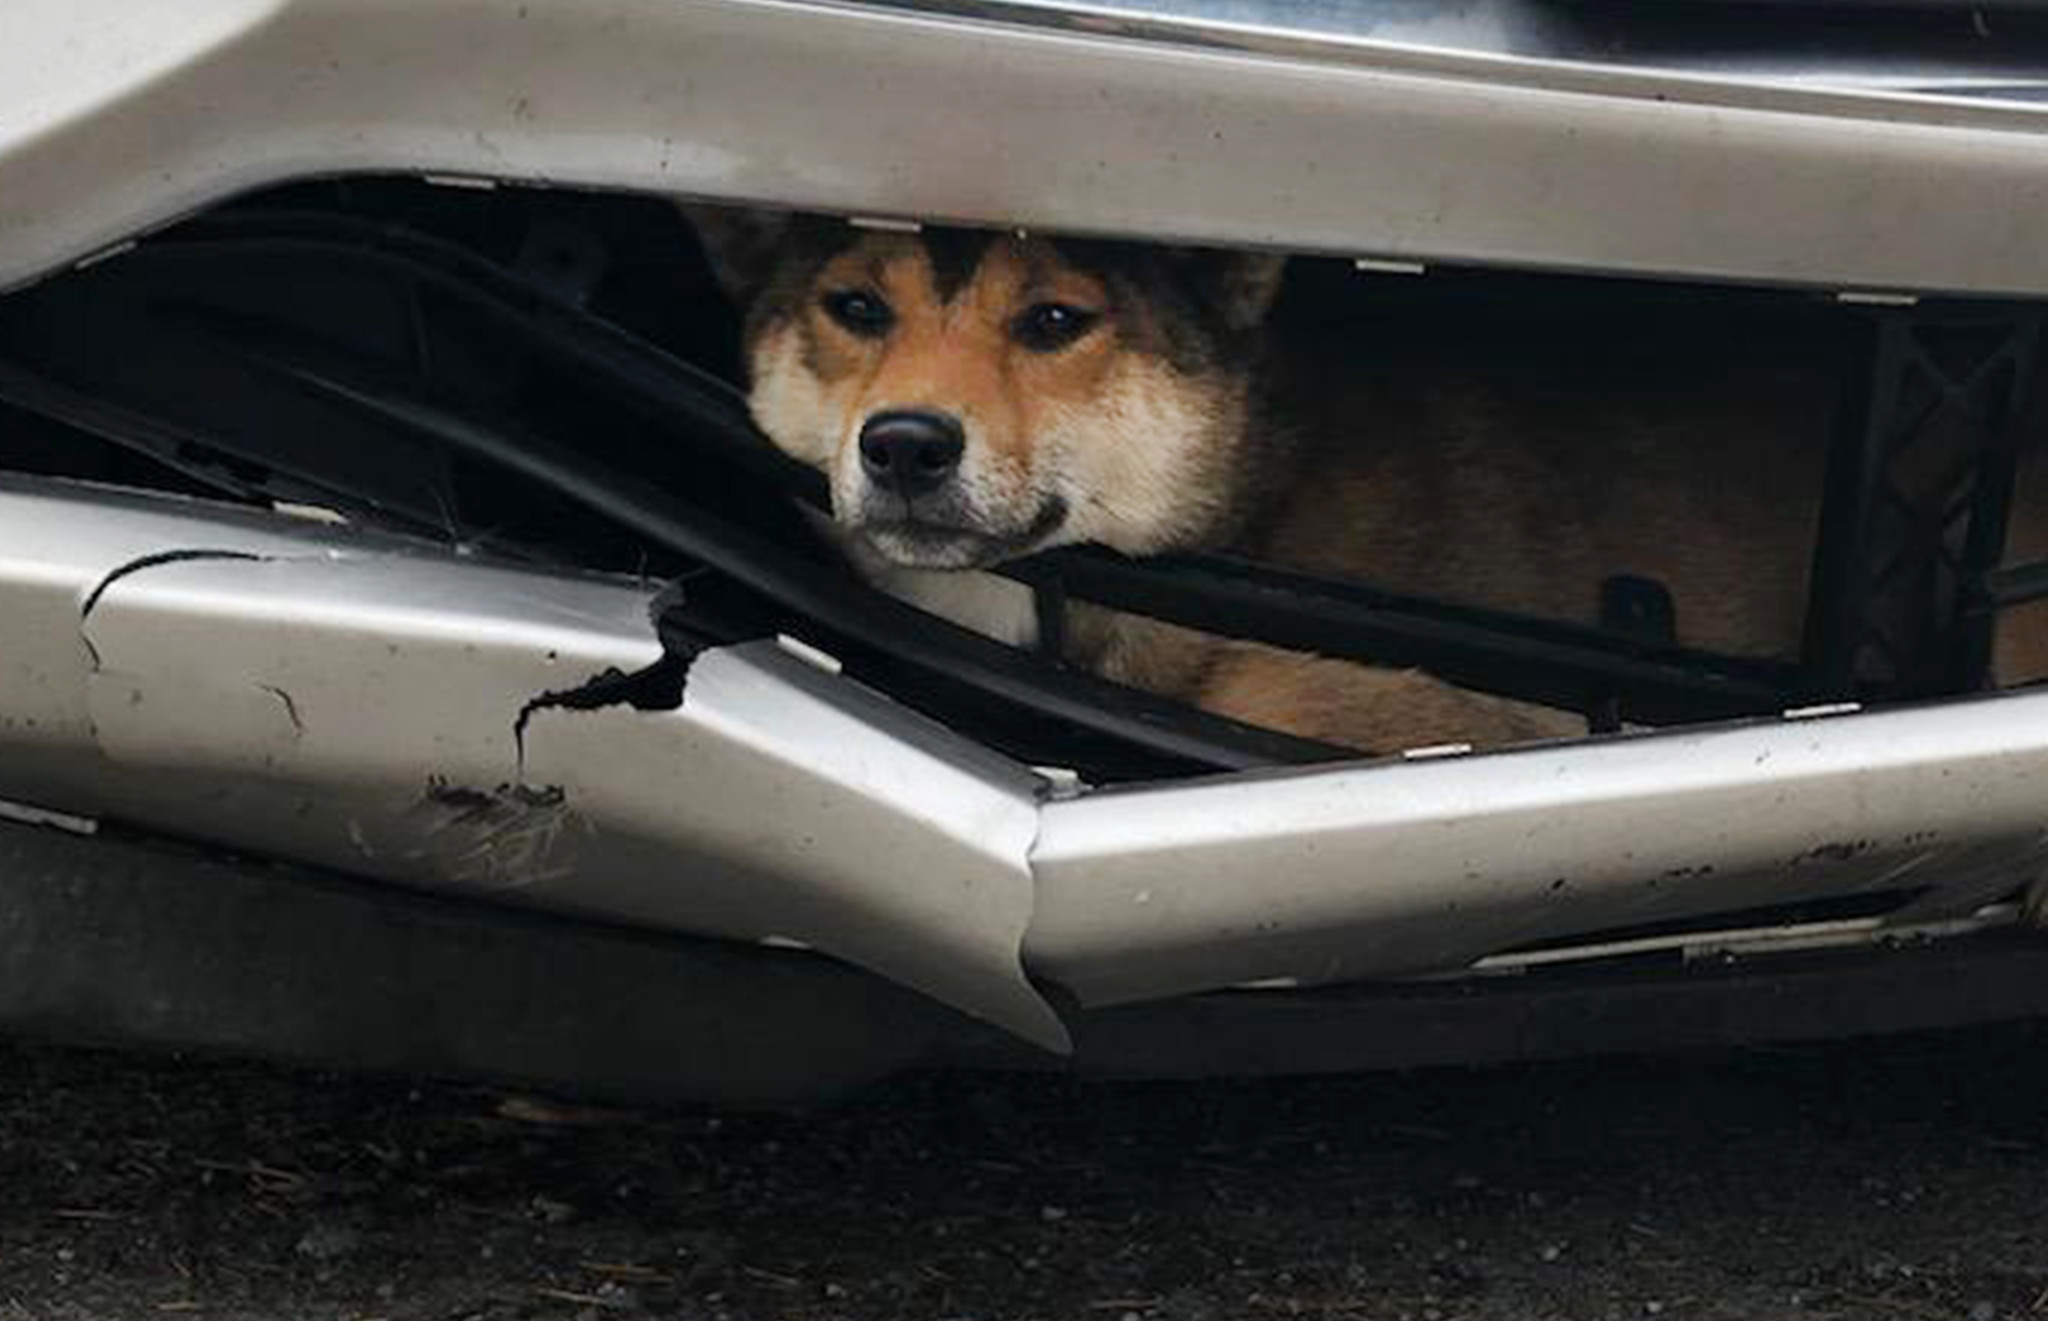 Dog survives after being wedged into car grill for miles before driver realizes it's there